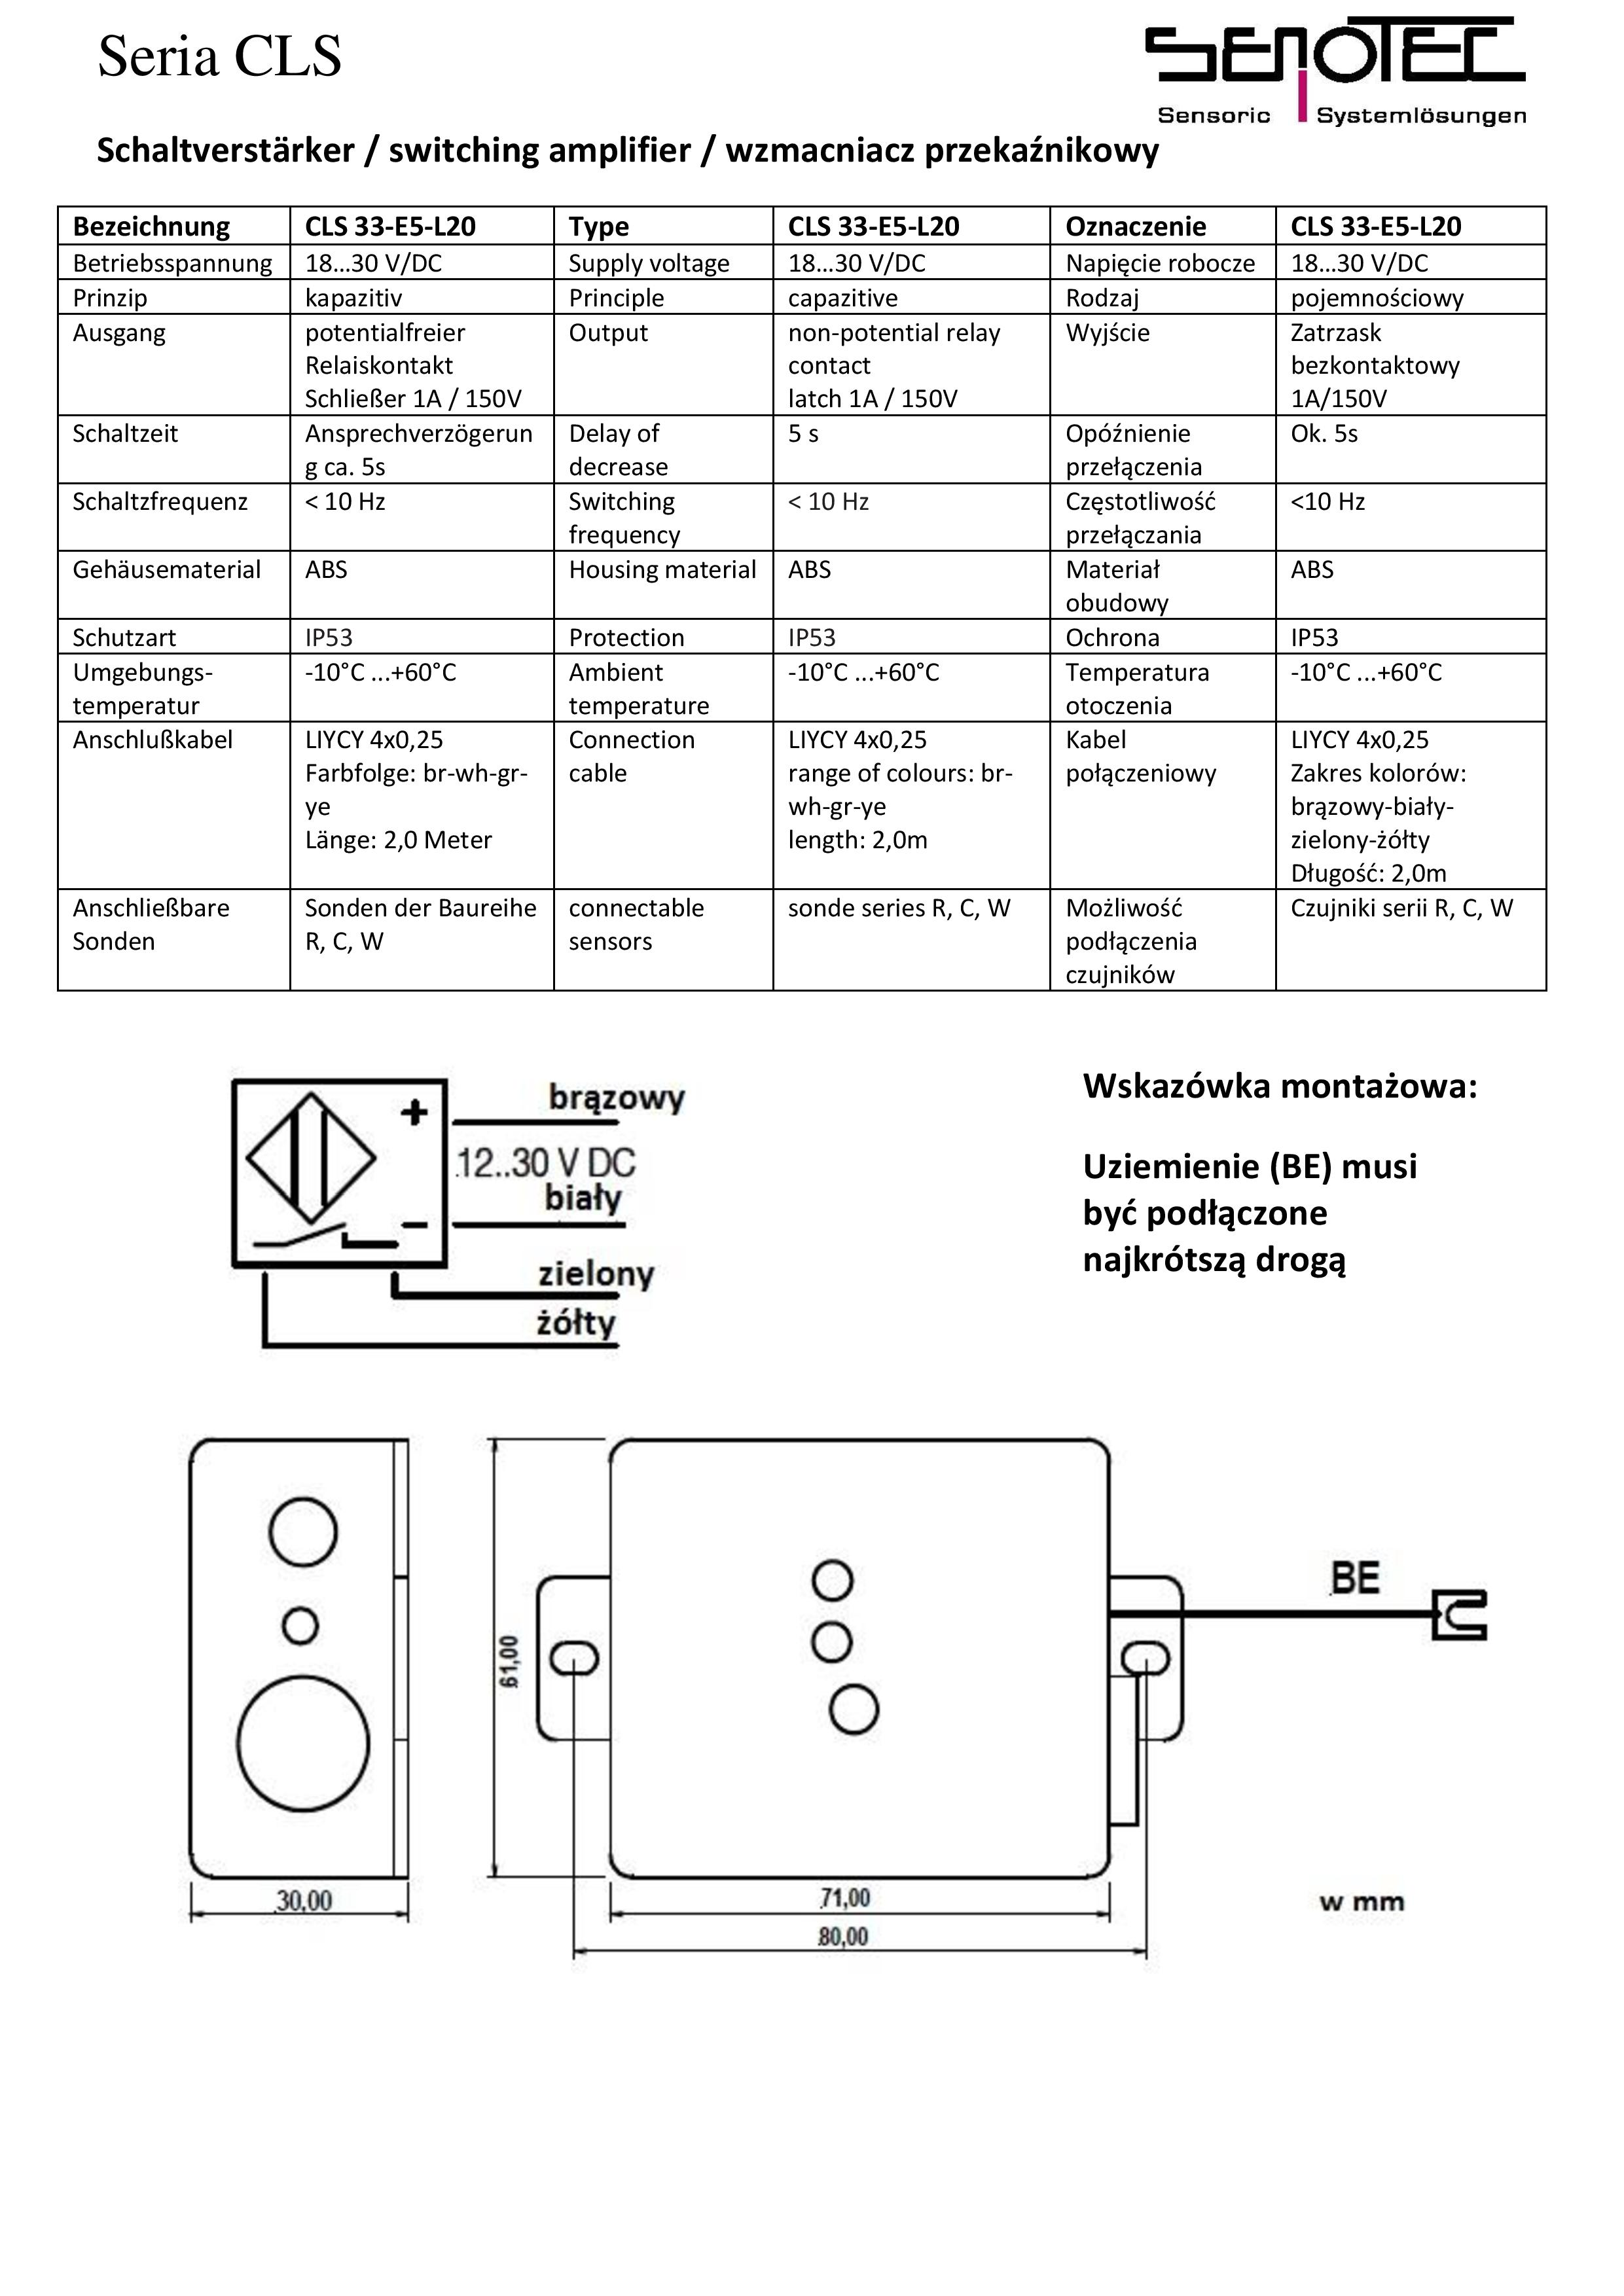 Seria CLS-page-001